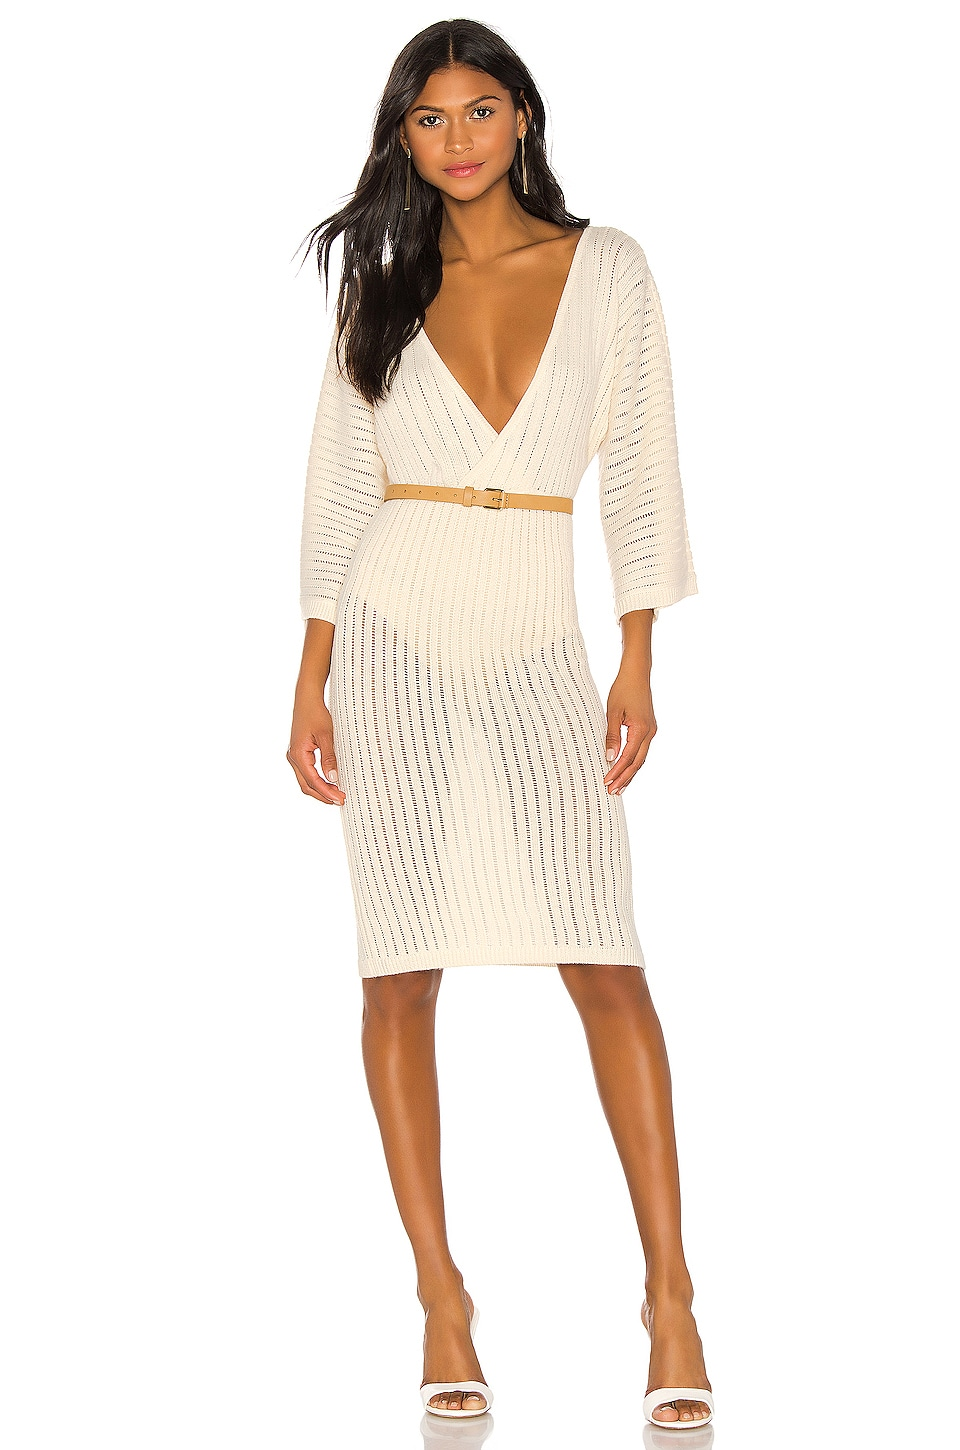 Tularosa Santal Dress in Ivory